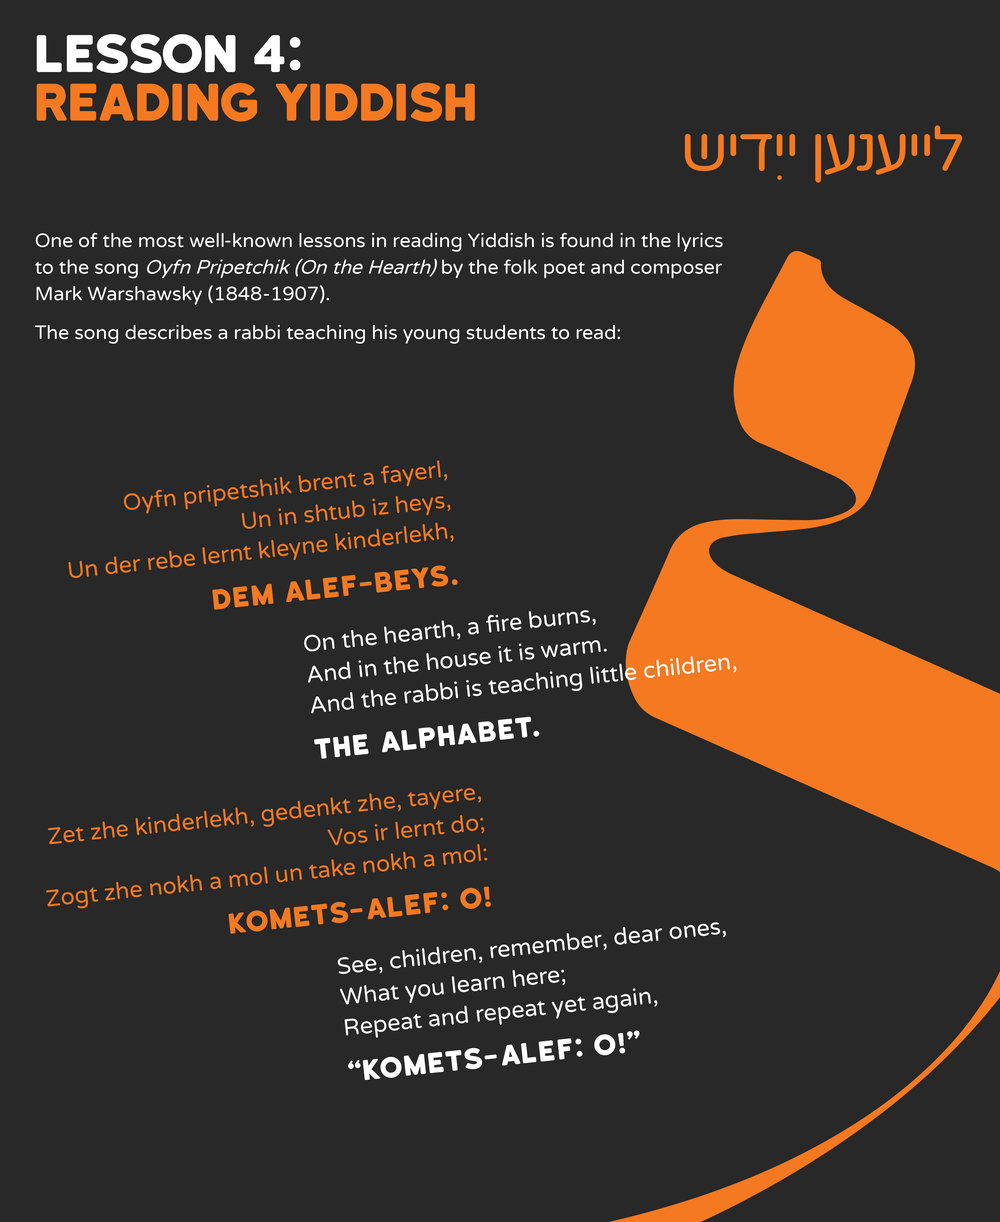 Lesson 4 - Reading Yiddish